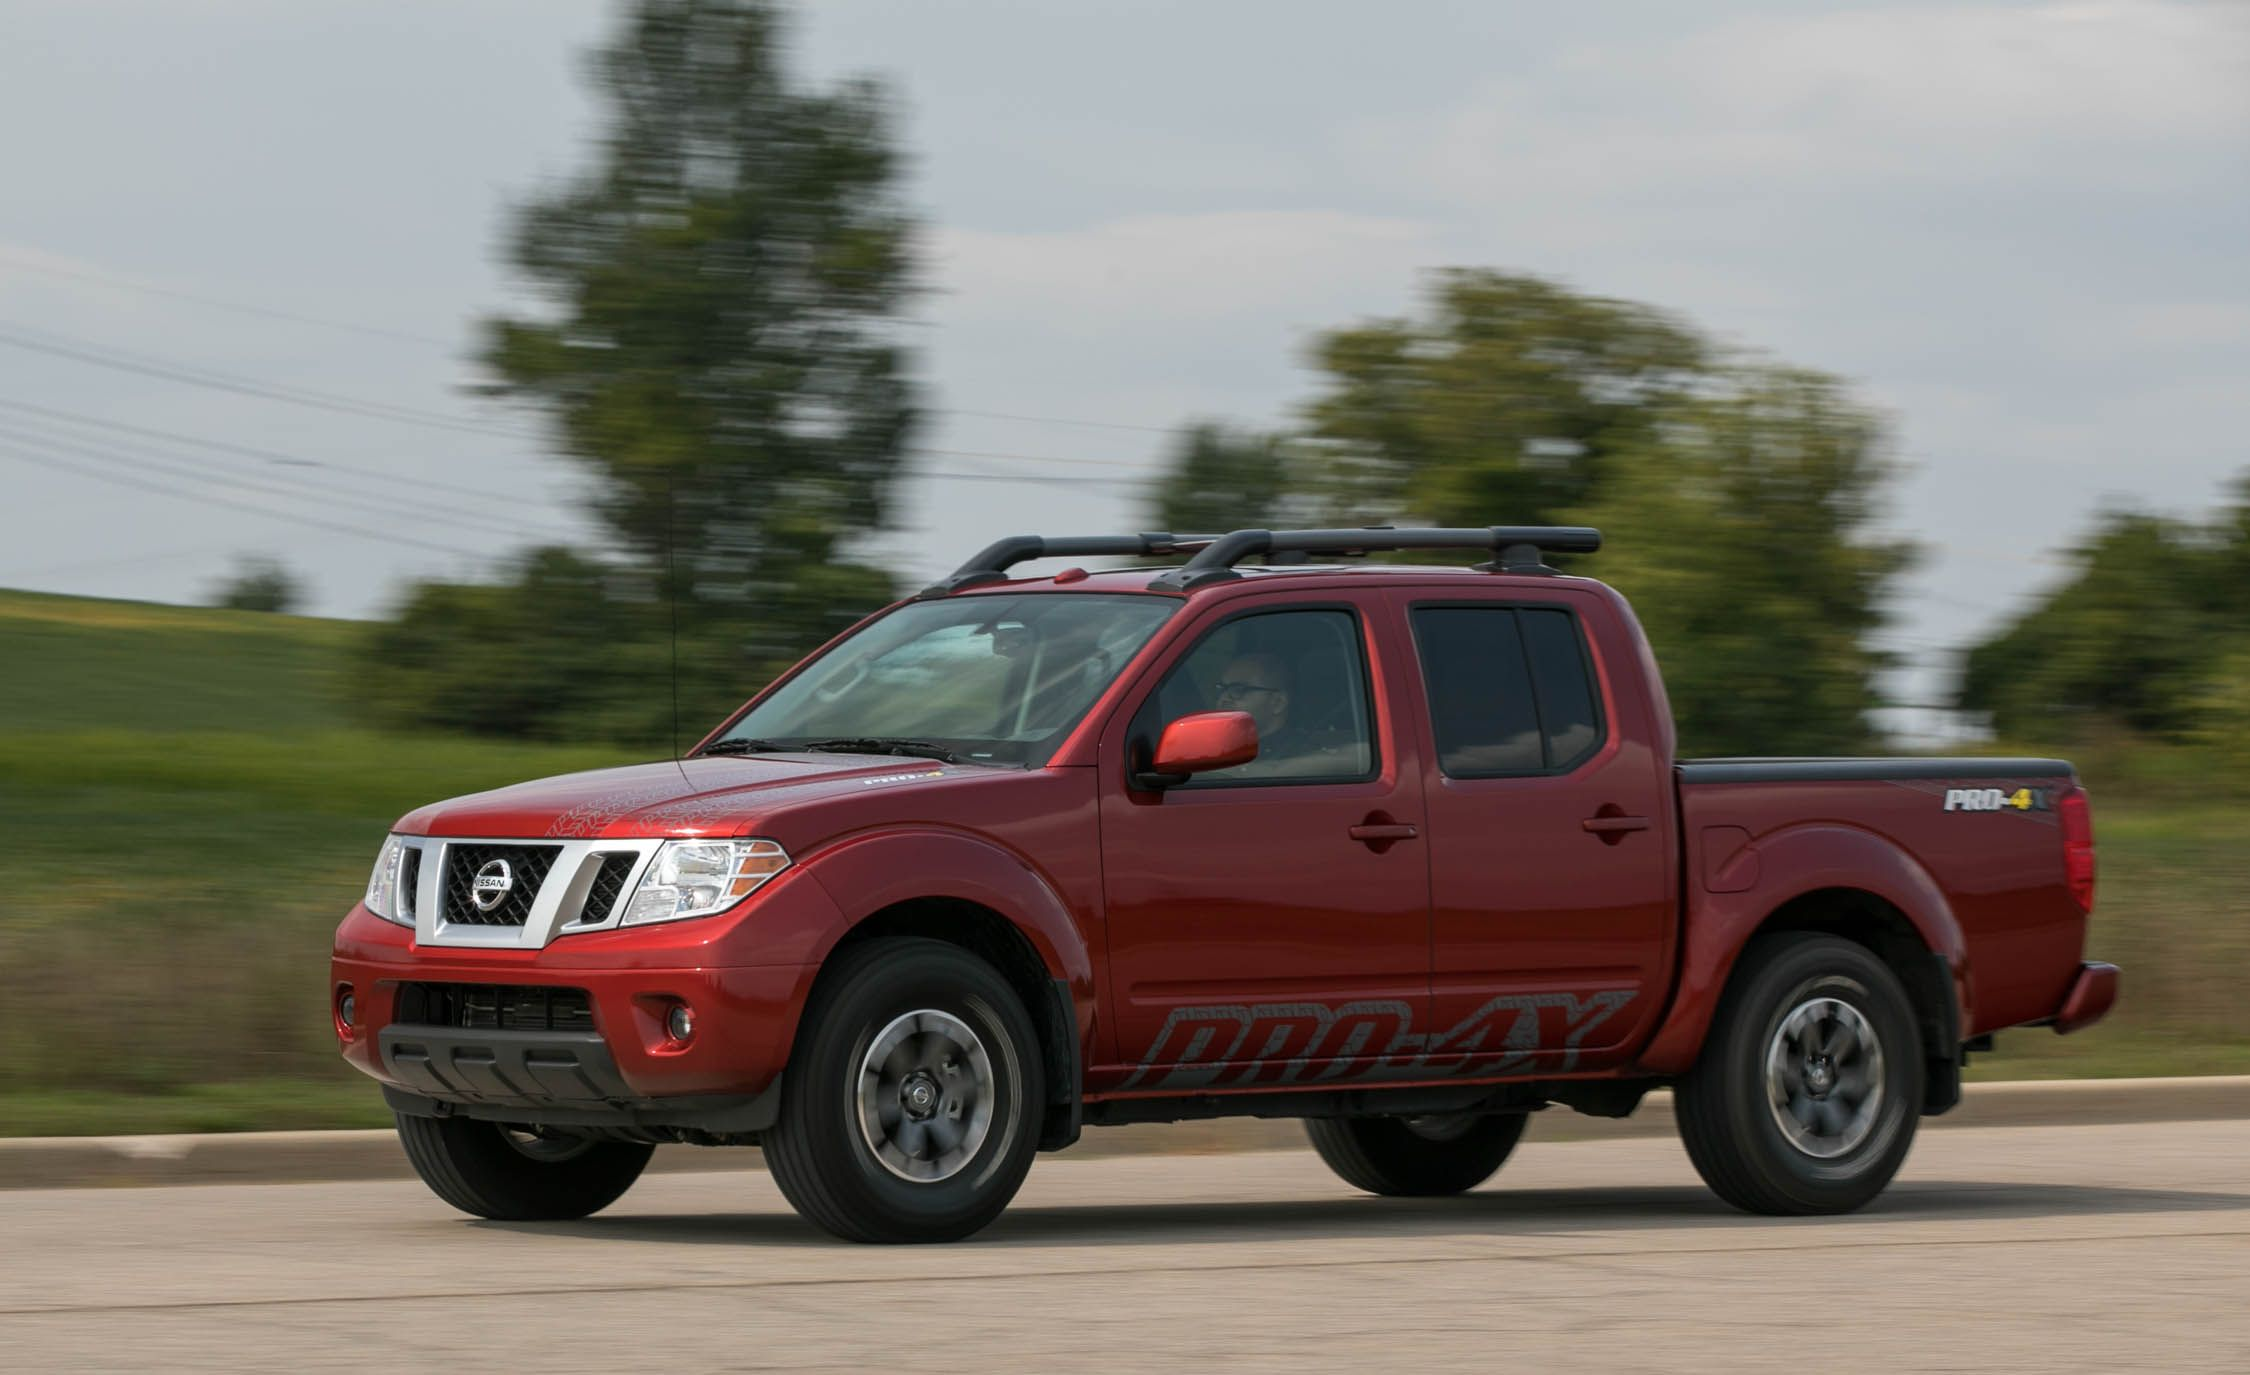 Nissan Frontier Reviews | Nissan Frontier Price, Photos, and Specs | Car  and Driver